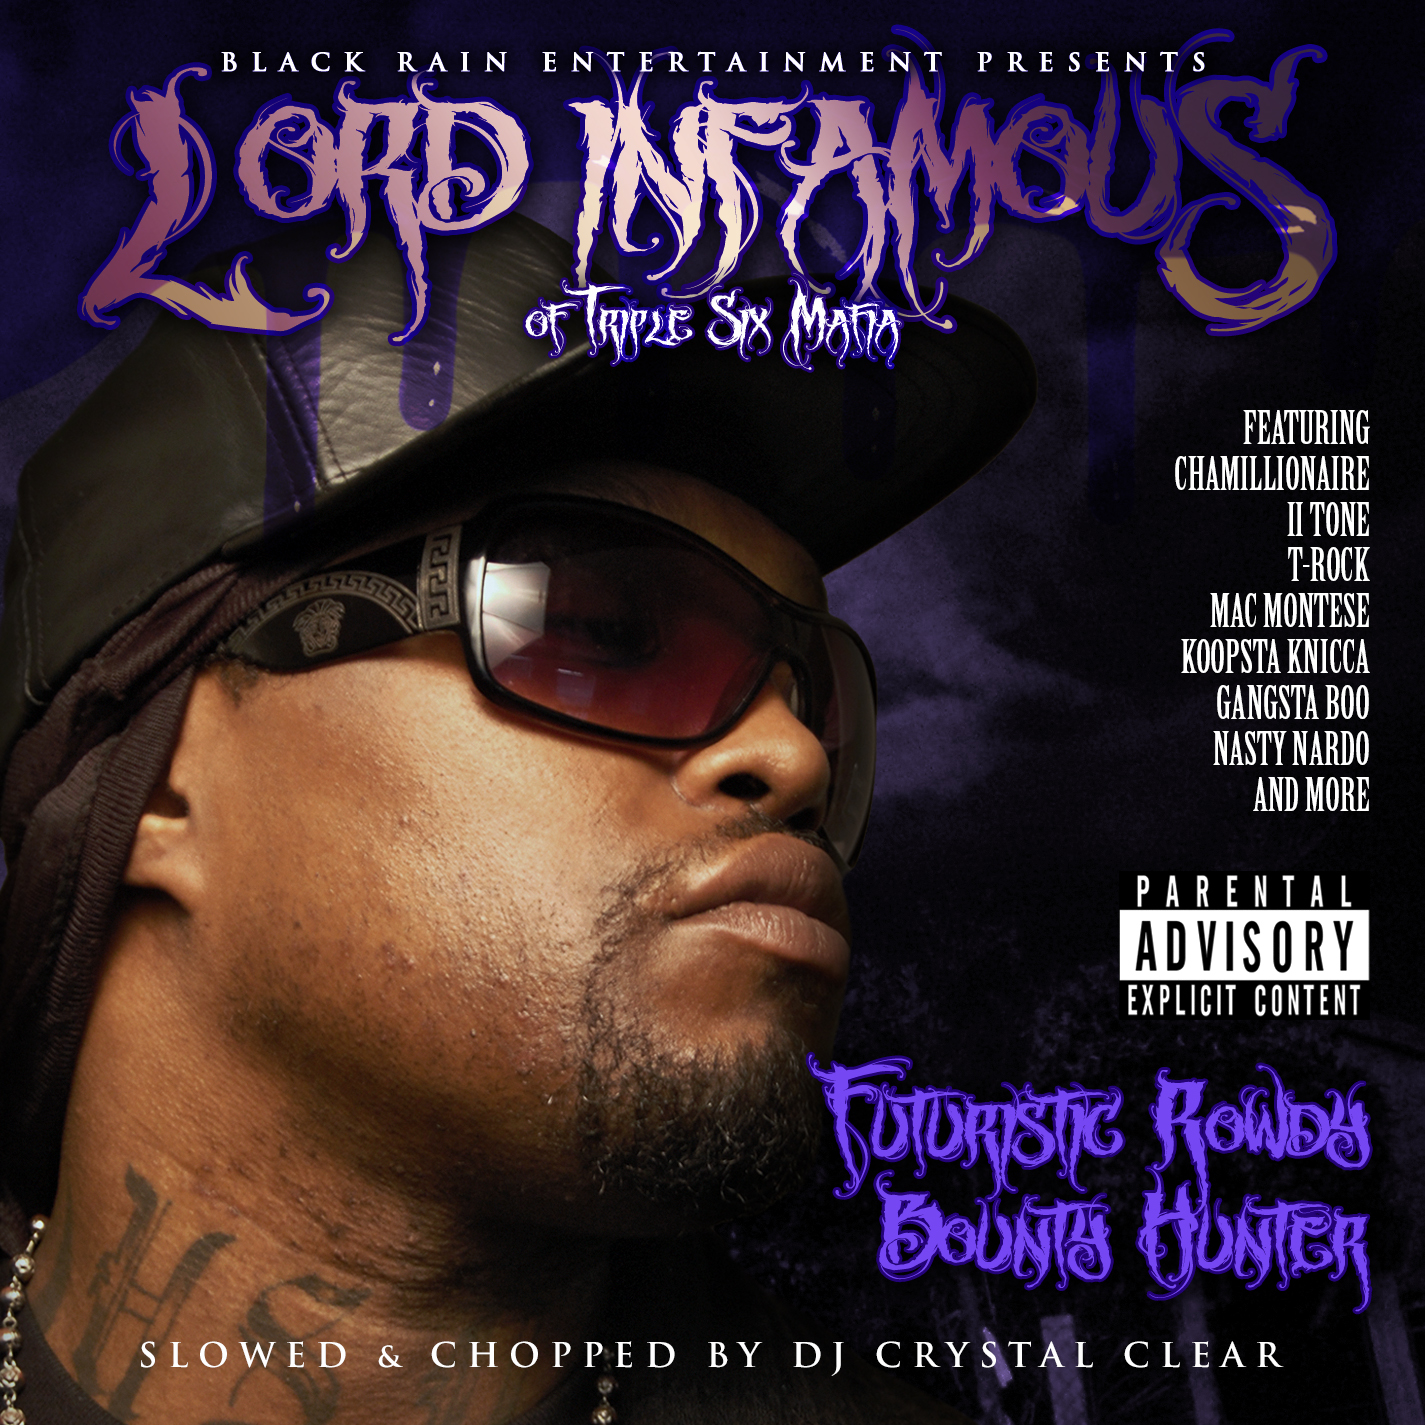 Lord Infamous - Futuristic Rowdy Bounty Hunter (Slowed & Chopped)